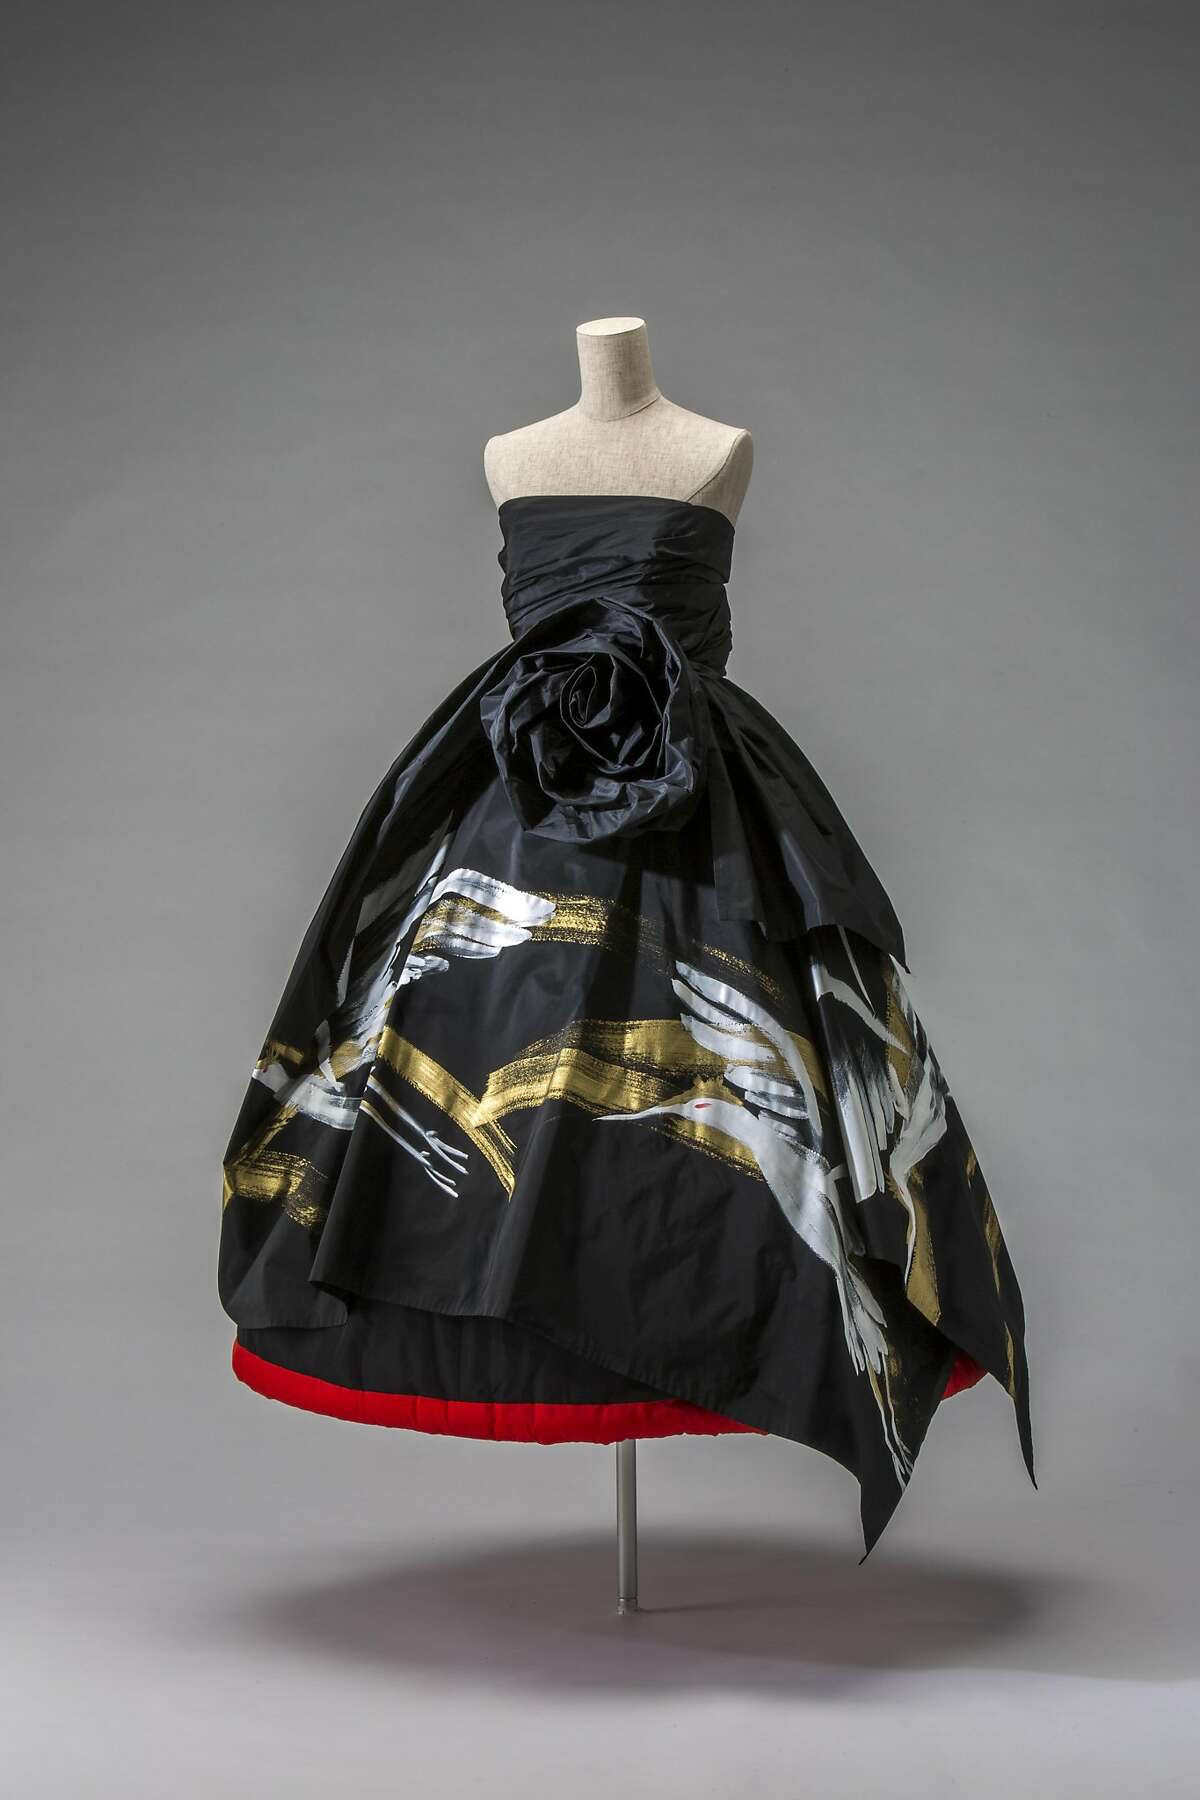 Evening dress, Autumn/Winter 1991, by Rei Kawakubo (Japanese, b. 1942) for Comme des Gar�ons Noir. Silk taffeta with hand painting. Collection of The Kyoto Costume Institute.